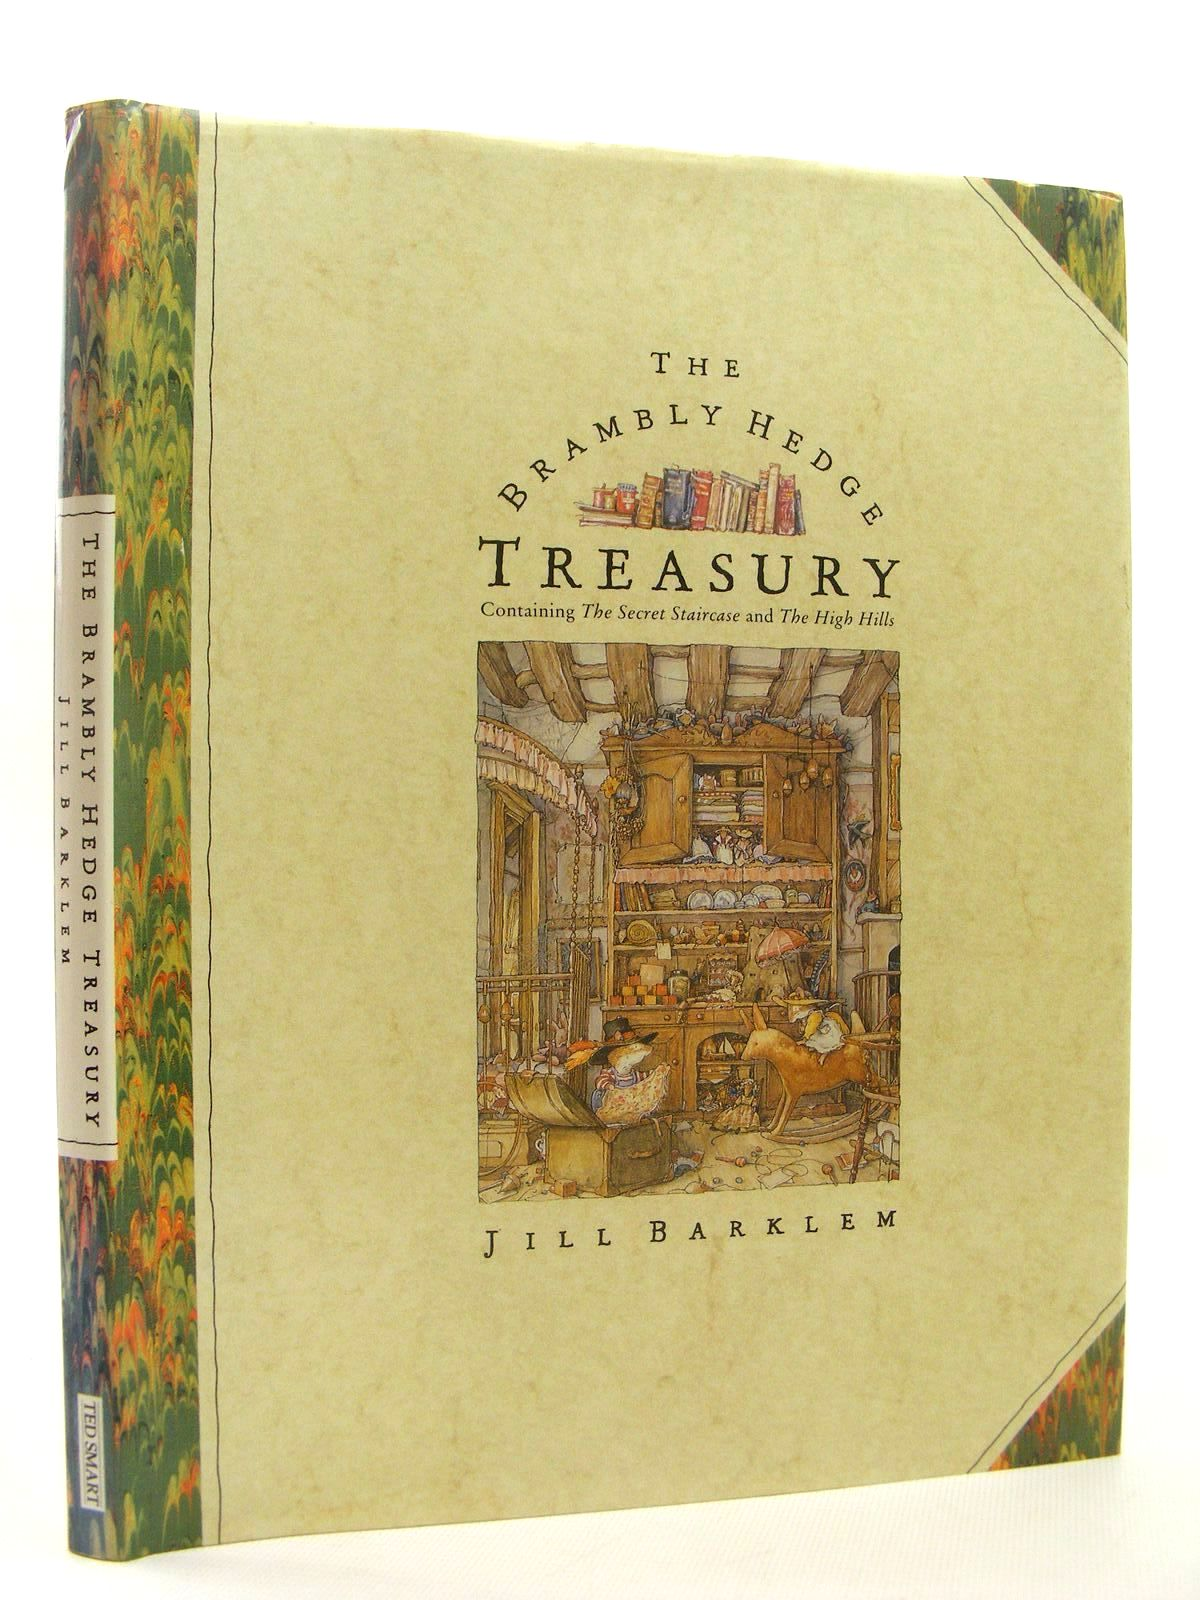 Photo of THE BRAMBLY HEDGE TREASURY written by Barklem, Jill illustrated by Barklem, Jill published by Ted Smart (STOCK CODE: 2124917)  for sale by Stella & Rose's Books